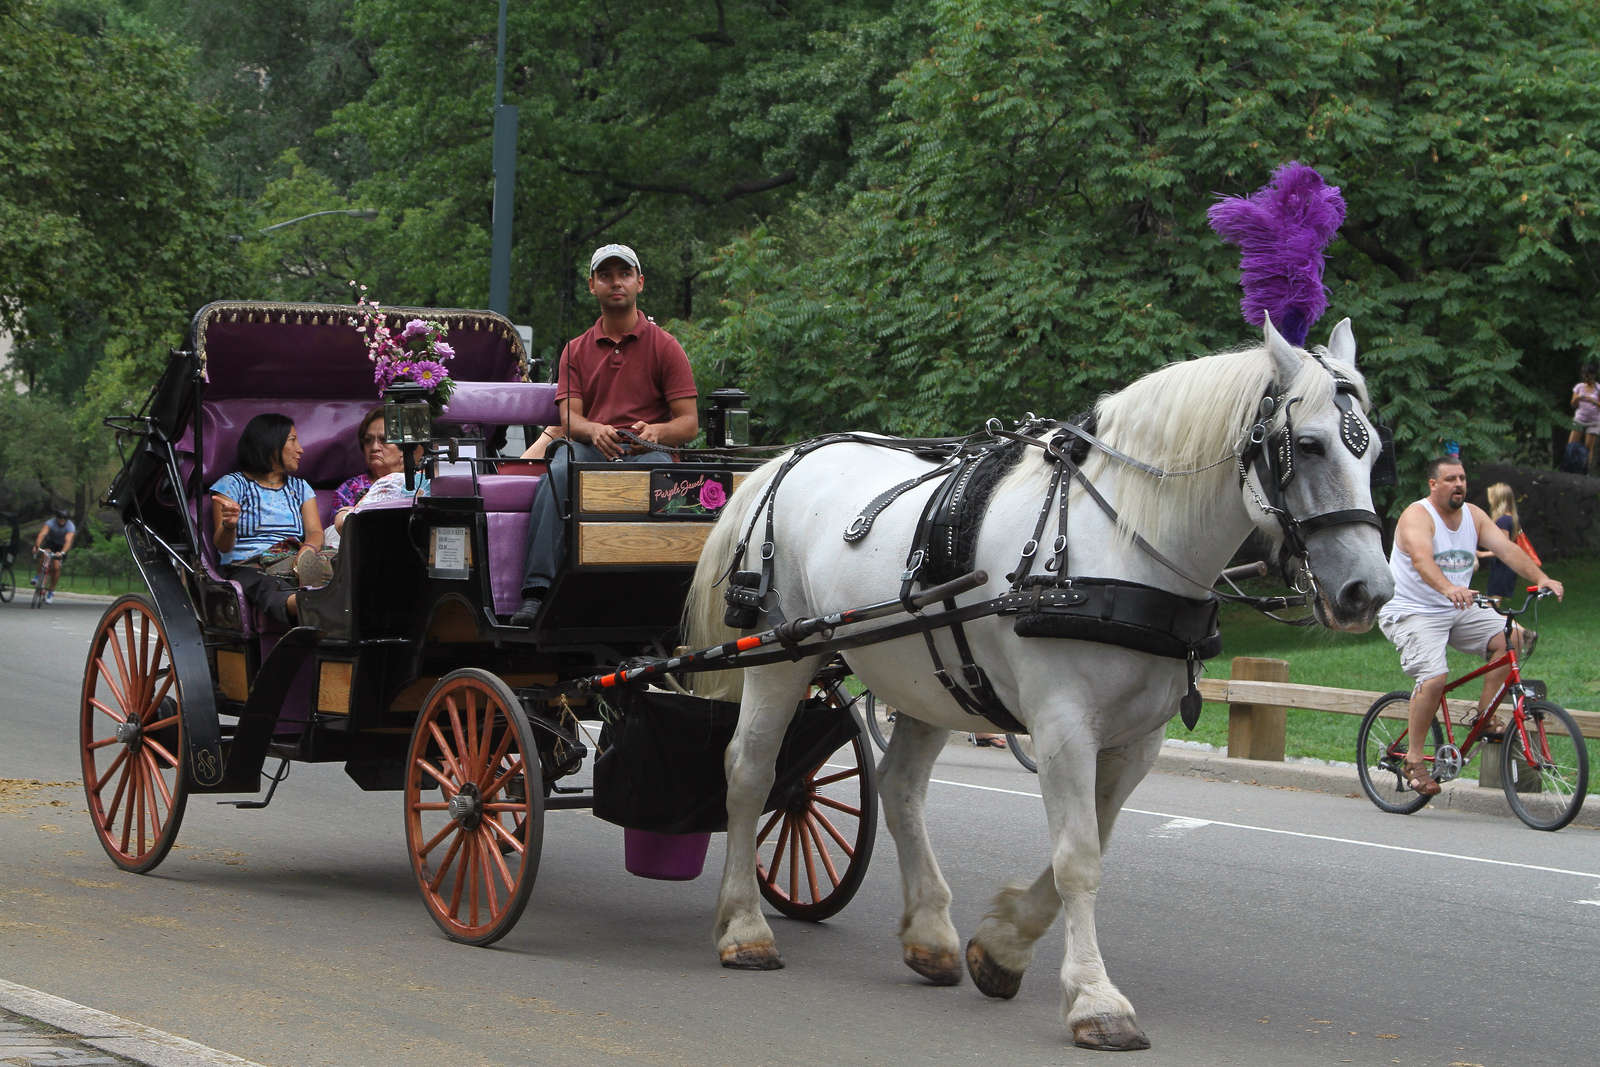 NYC Horse Carriages Finally On the Way Out!